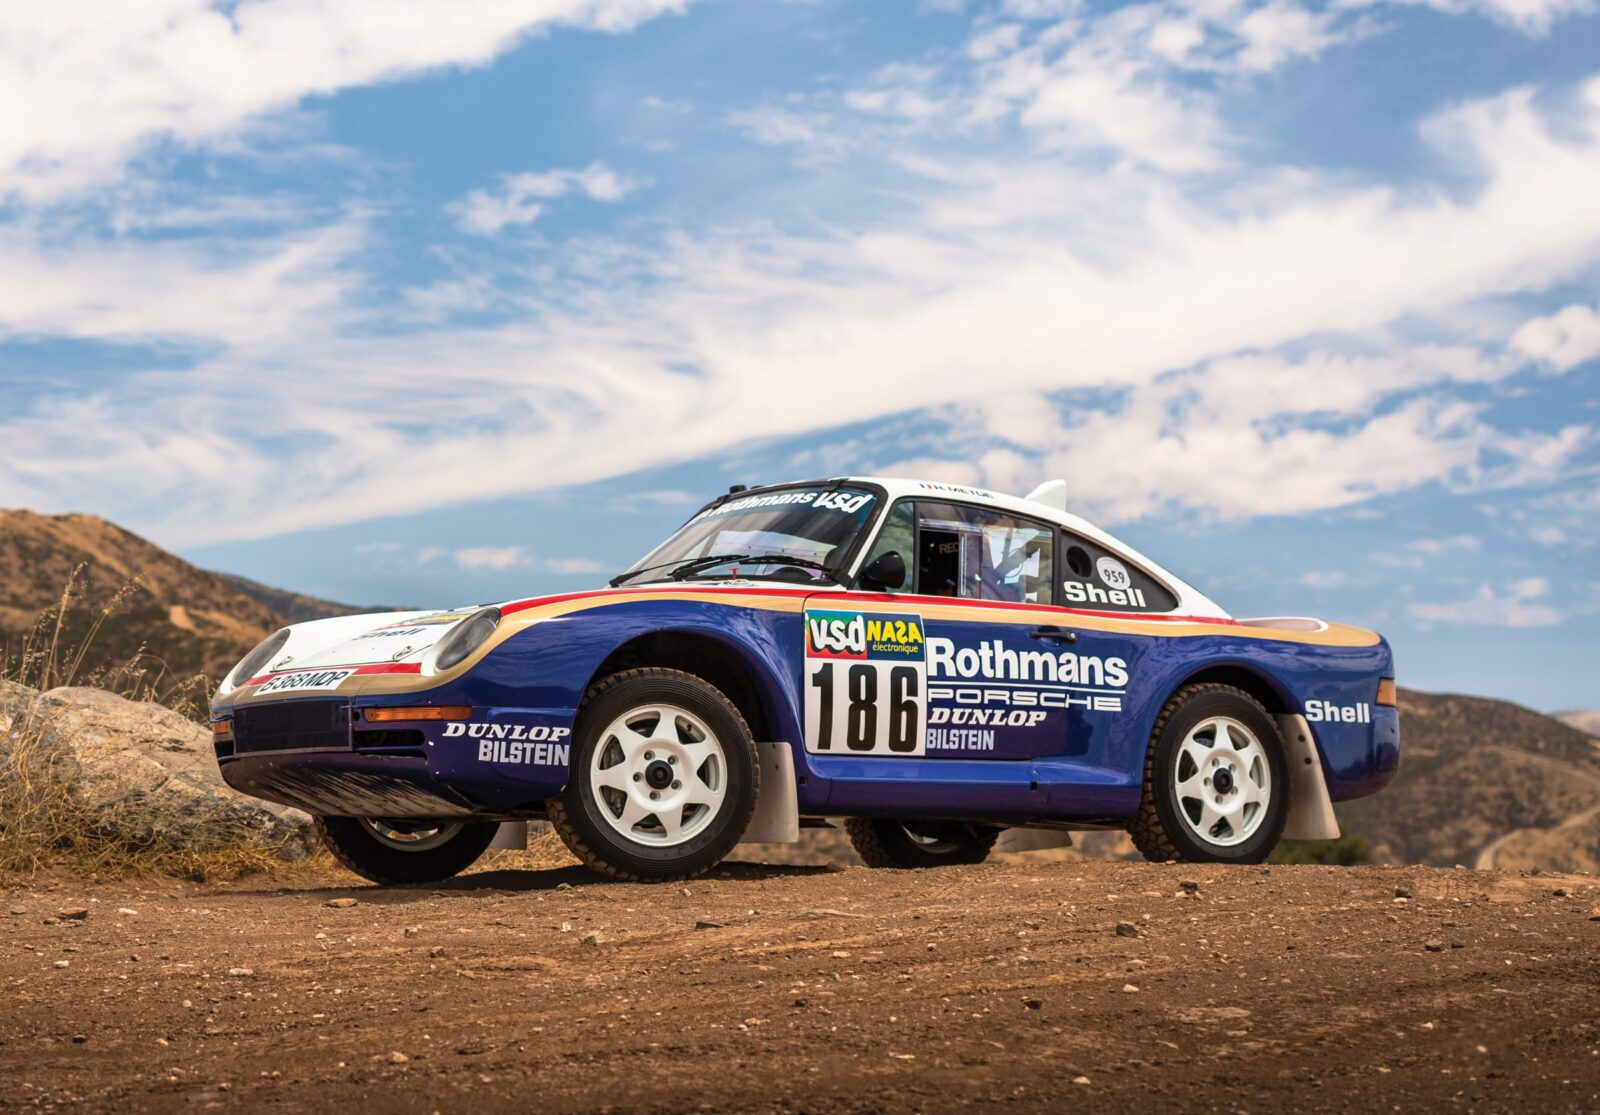 The German Rally Unicorn An Original Porsche 959 Paris